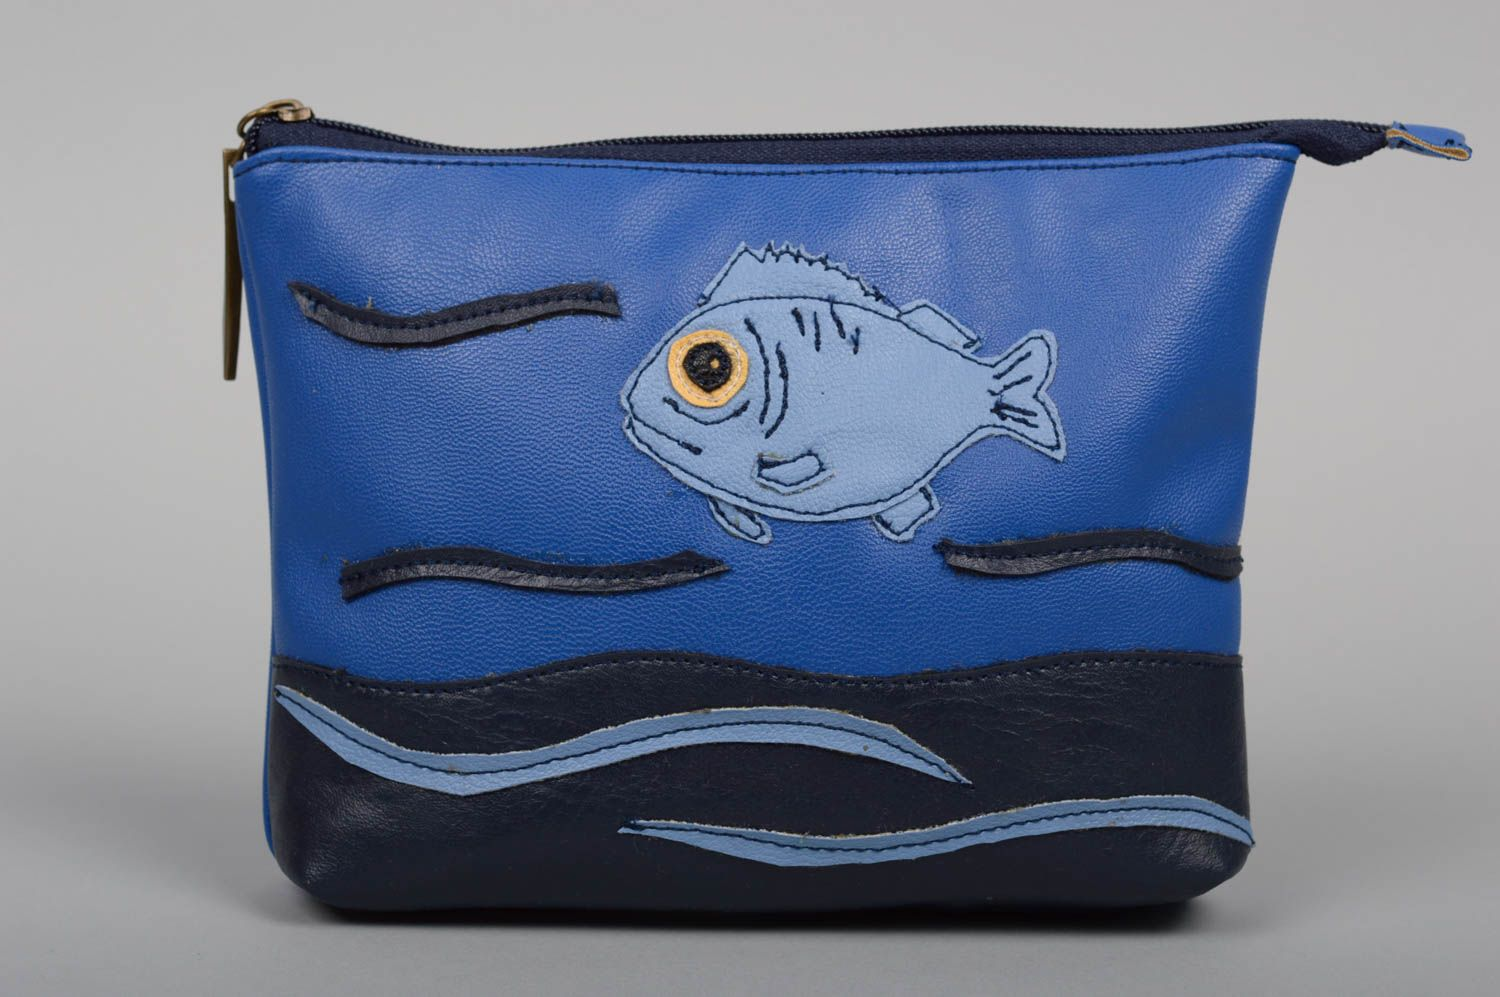 Handmade clutch bag women blue clutch leatherette bag unusual female accessory photo 1